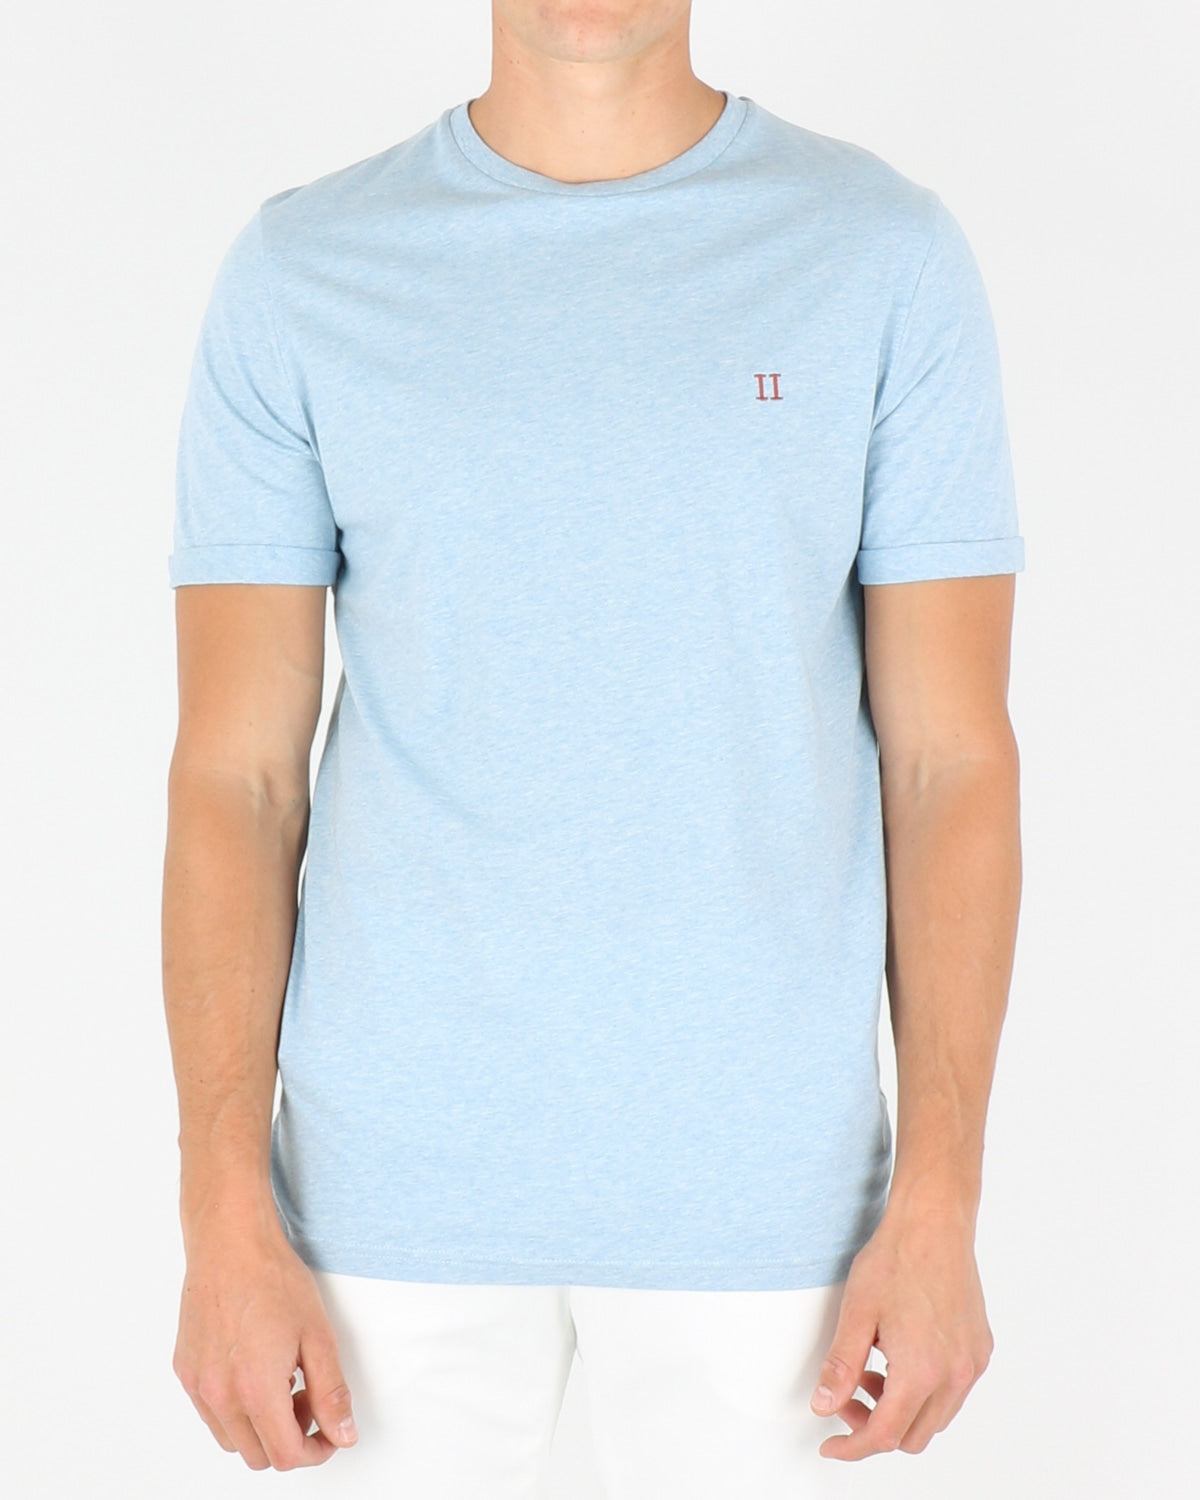 les deux_norregaard t-shirt_light blue melange orange_1_3